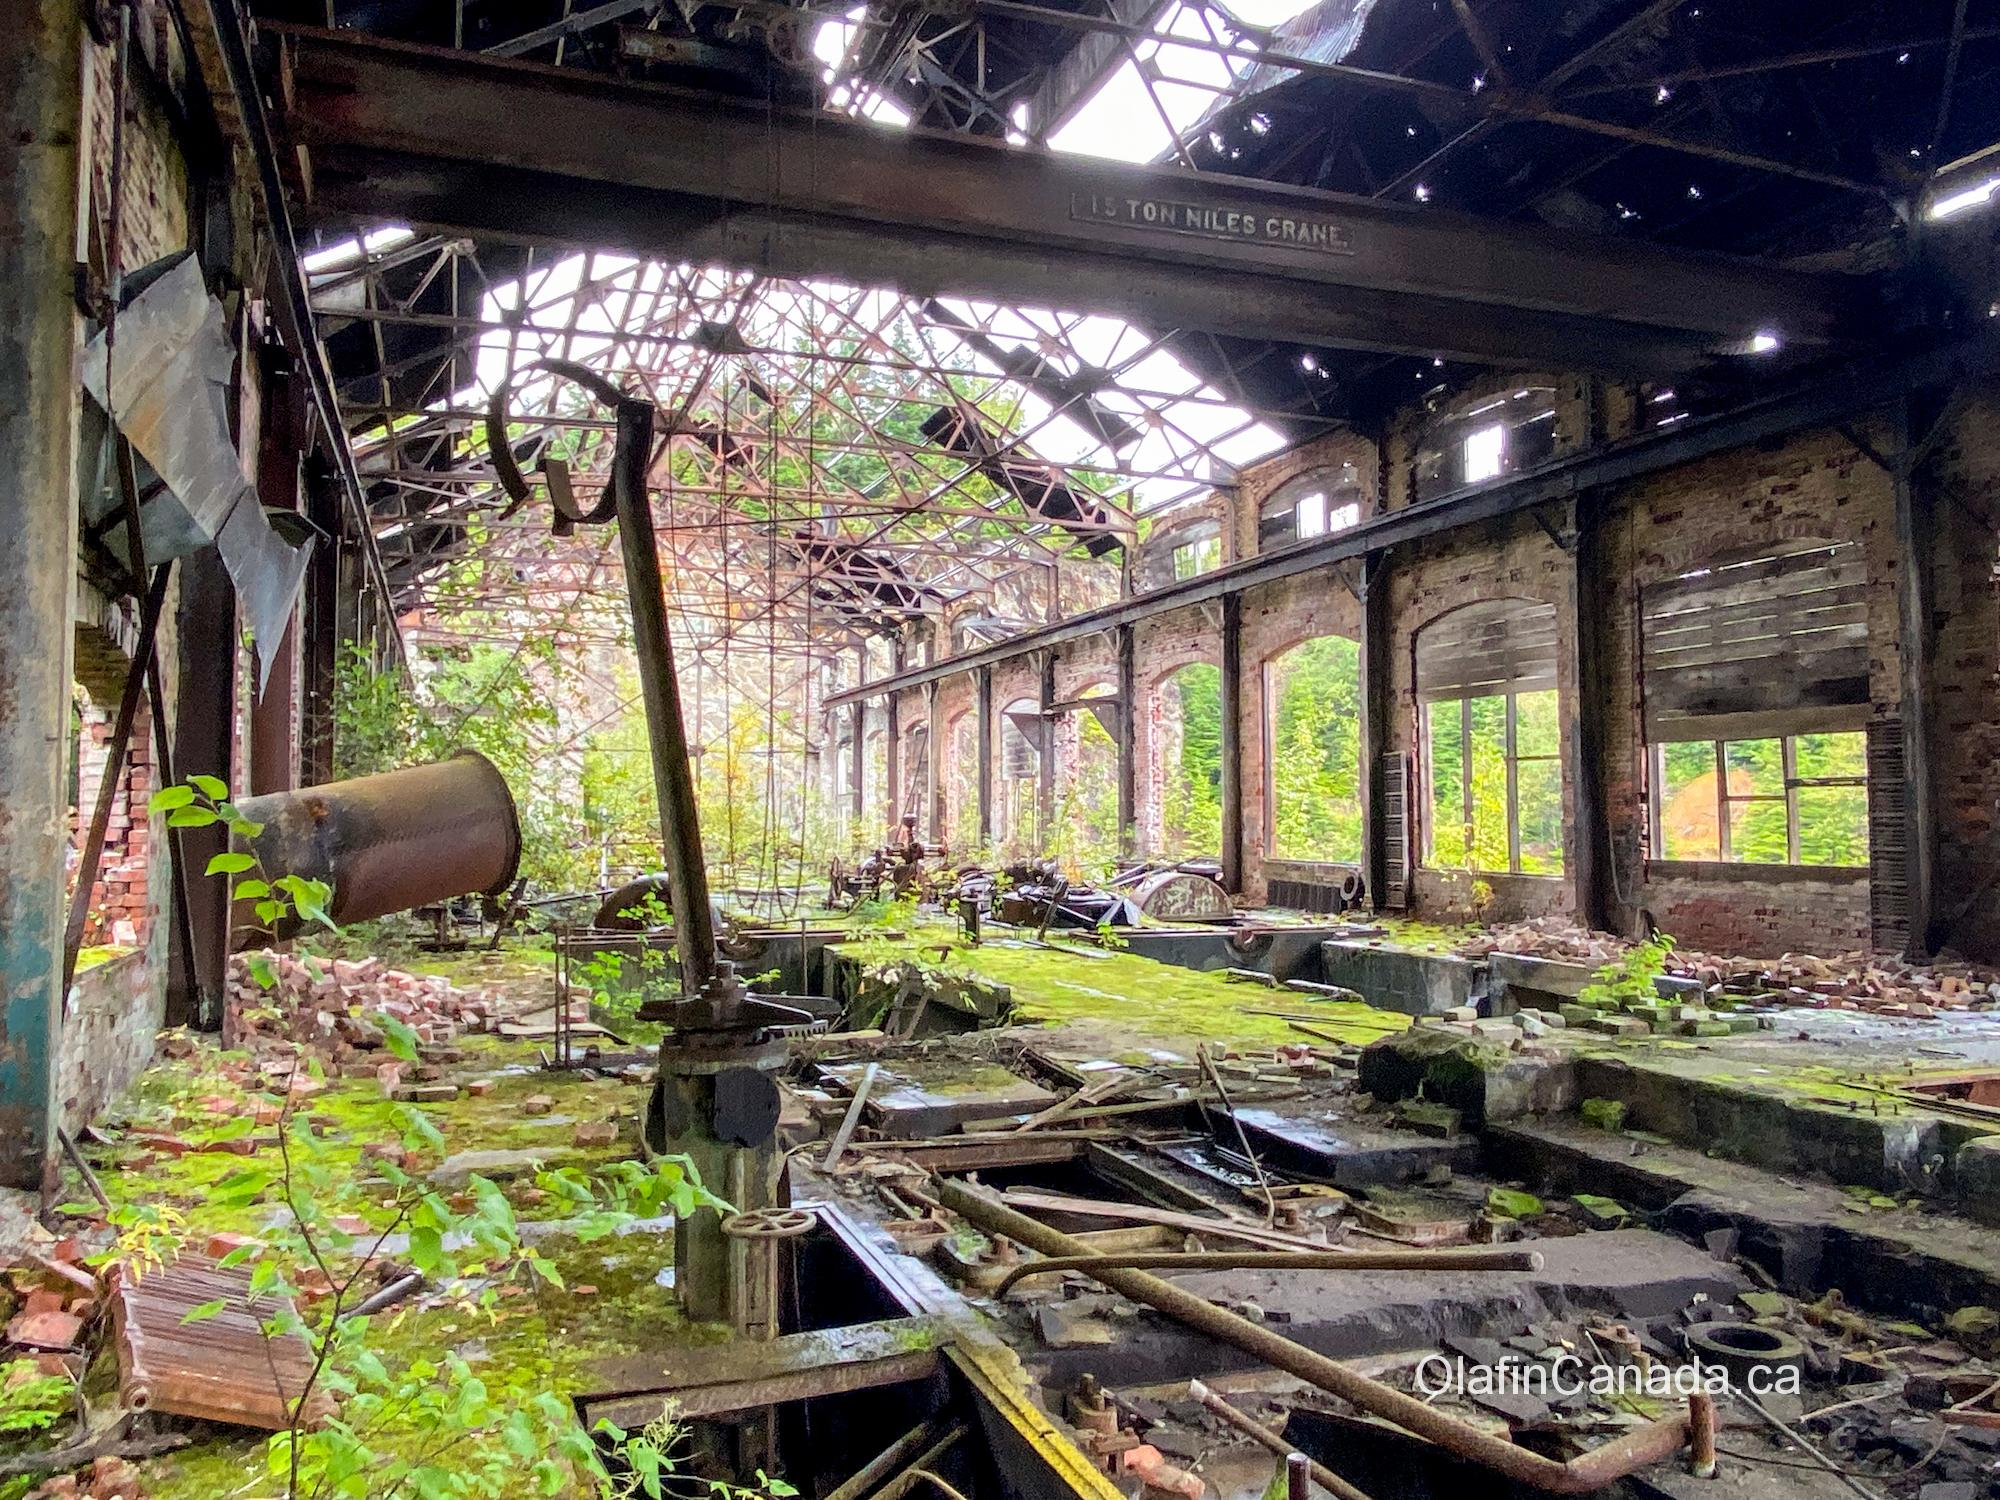 Powerhouse provided electricity for the smelter, machine shops and other mining operations, as well as the town #olafincanada #britishcolumbia #discoverbc #abandonedbc #anyox #powerhouse